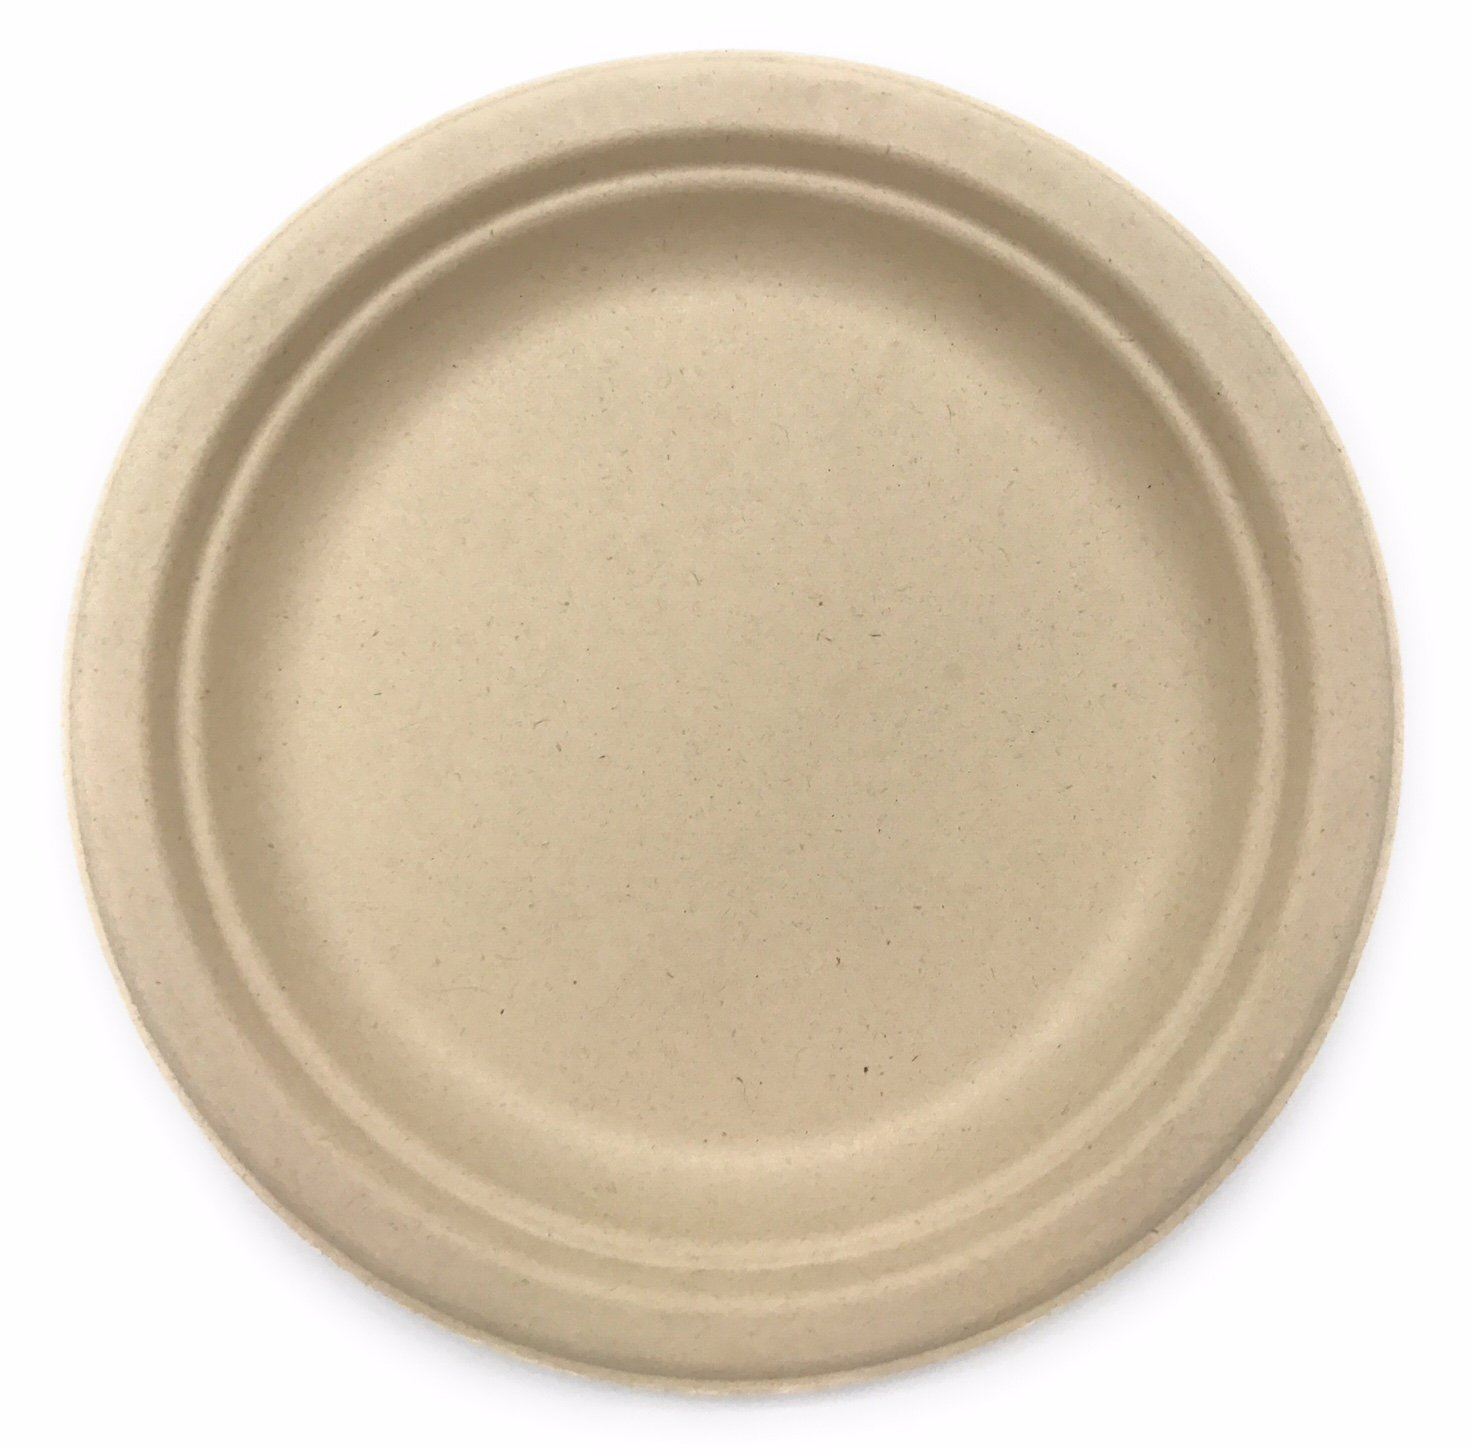 [500 COUNT] 9'' in Round Disposable Plates - Natural Sugarcane Bagasse Bamboo Fibers Sturdy Nine Inch Compostable Eco Friendly Environmental Paper Plate Alternative 100% by-product Tree Plastic Free